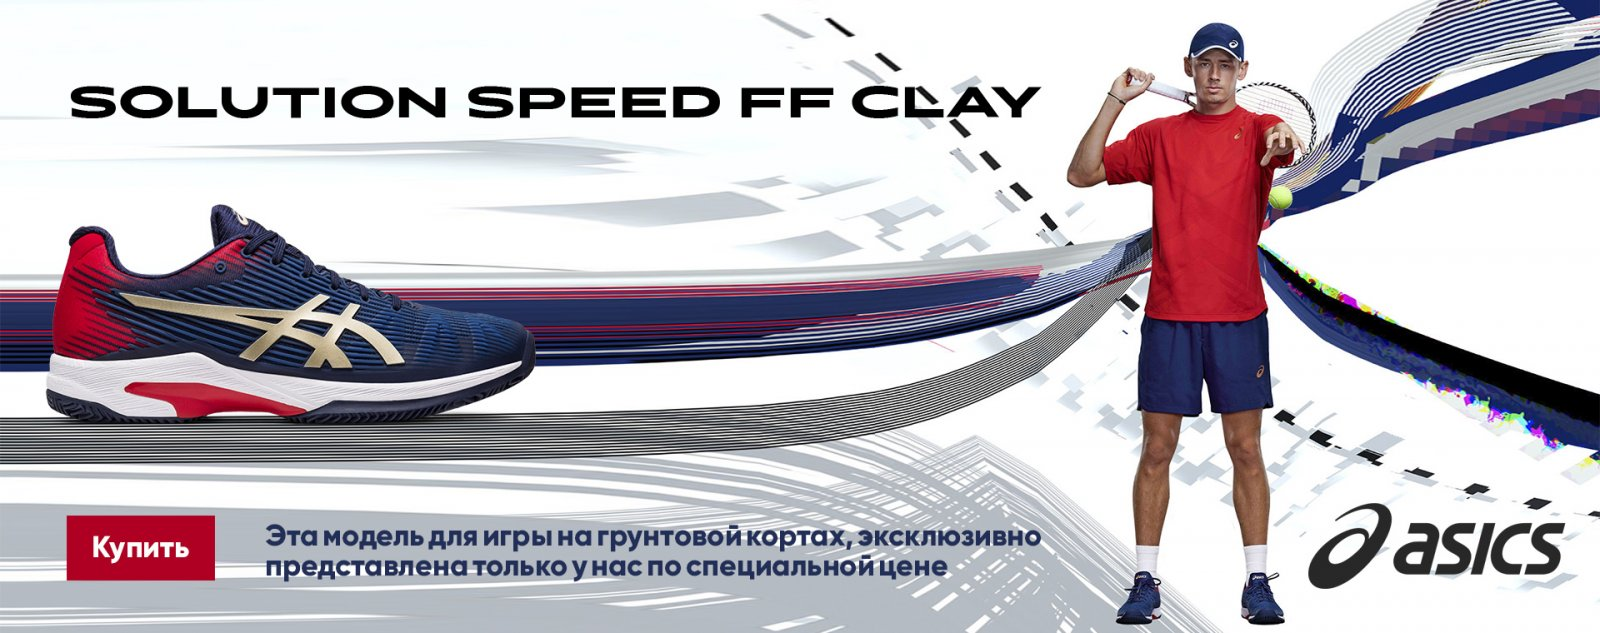 SOLUTION_SPEED_FF_CLAY